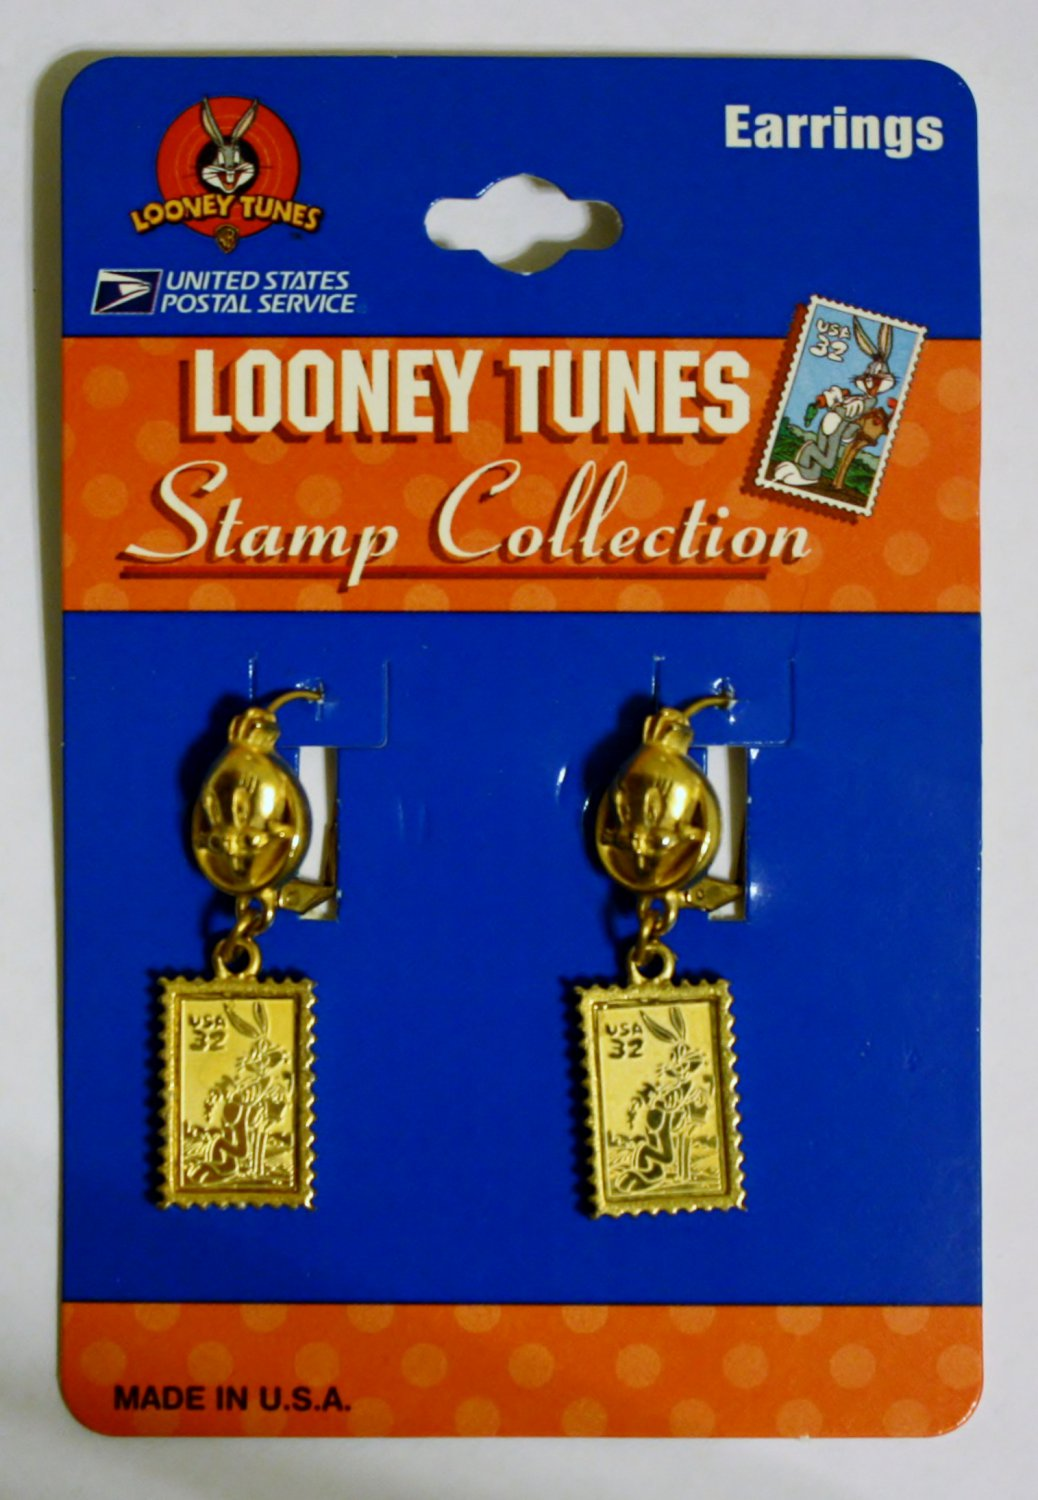 Looney Tunes Stamp Collection Earings